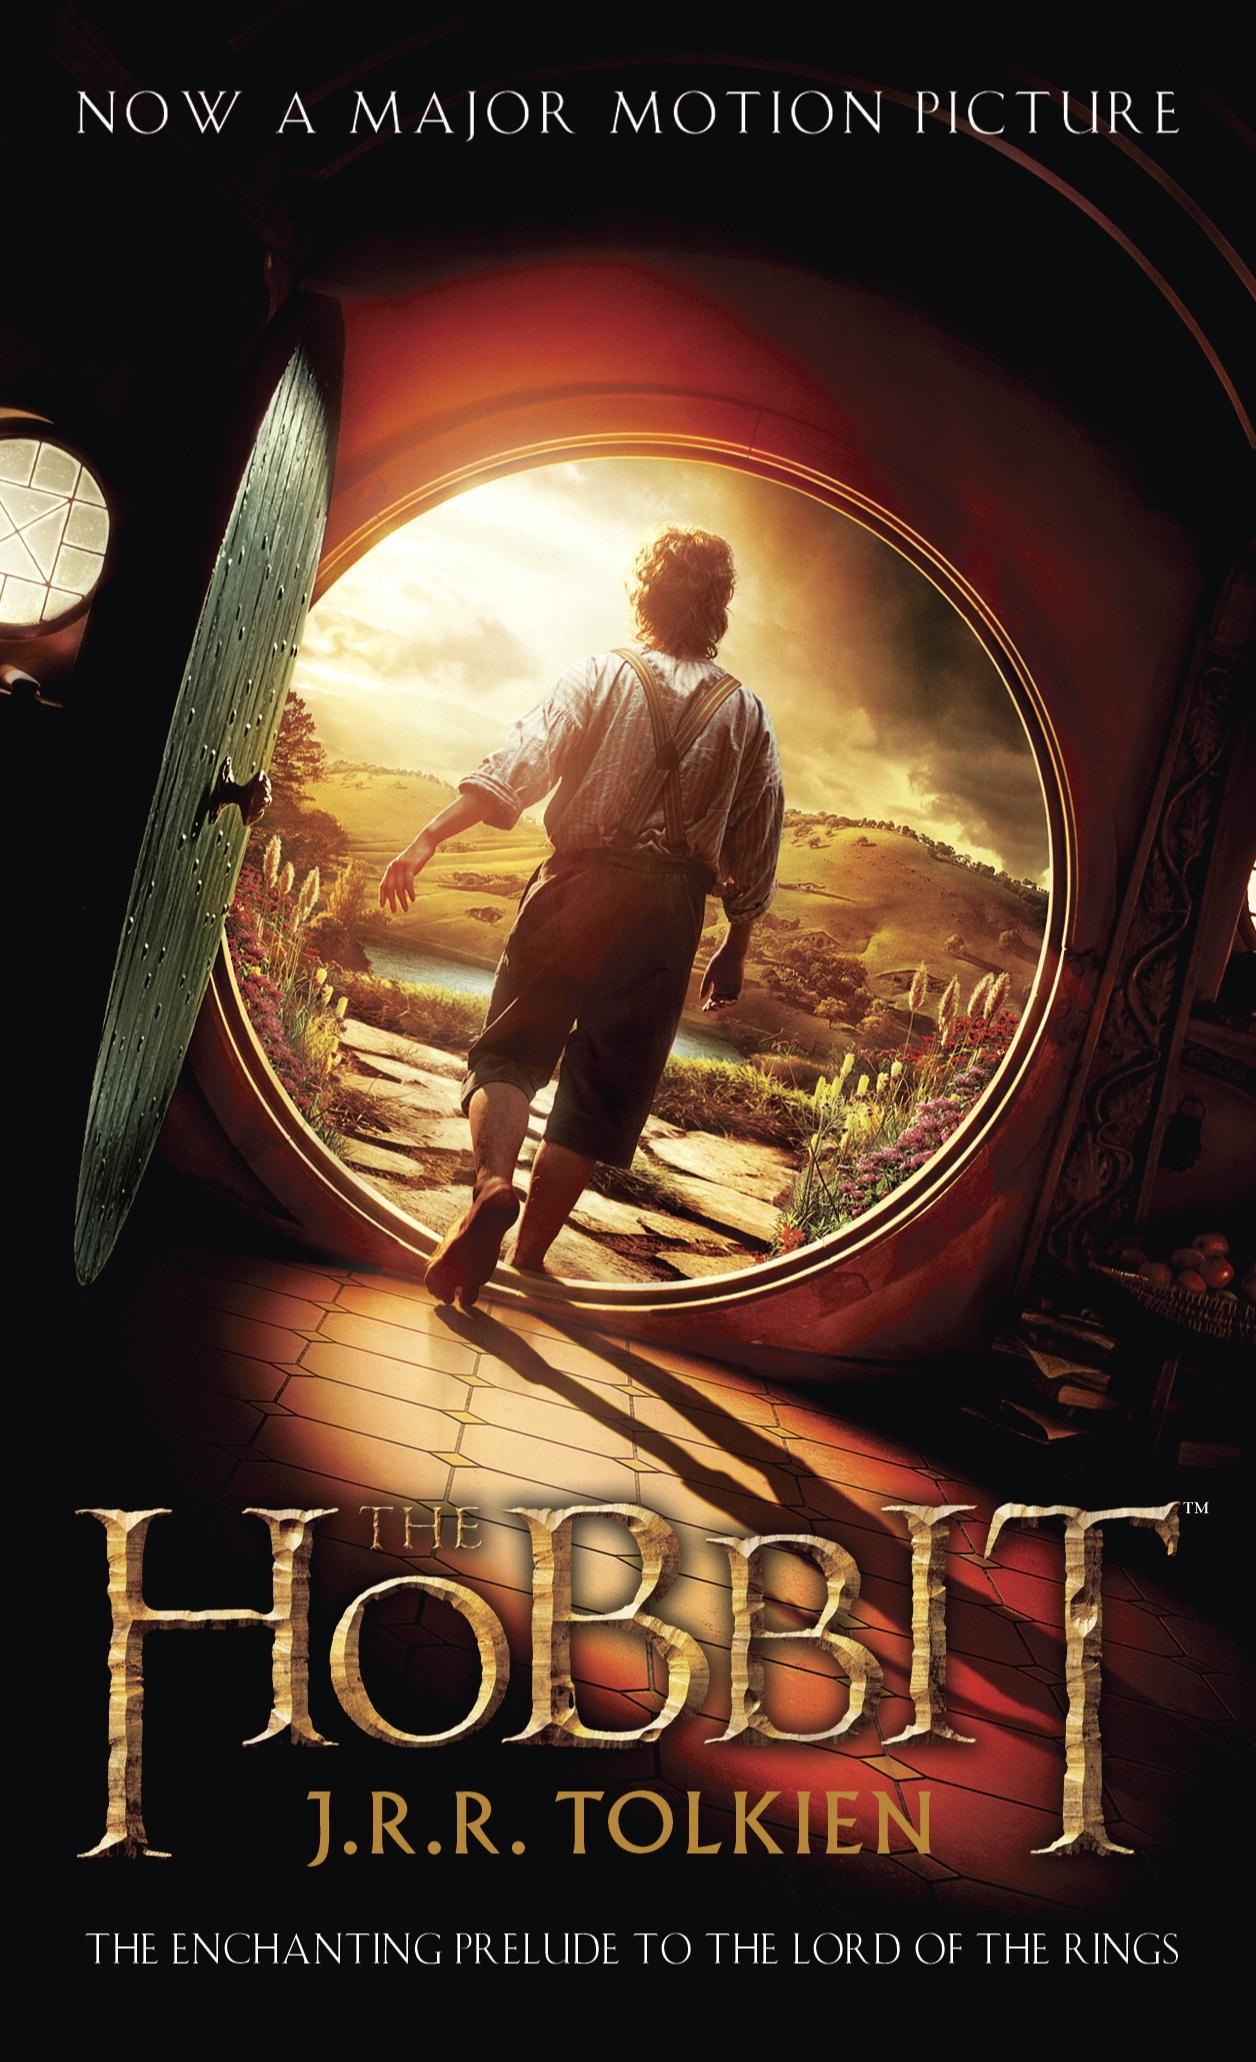 The Hobbit by J.R.R. Tolkien - review